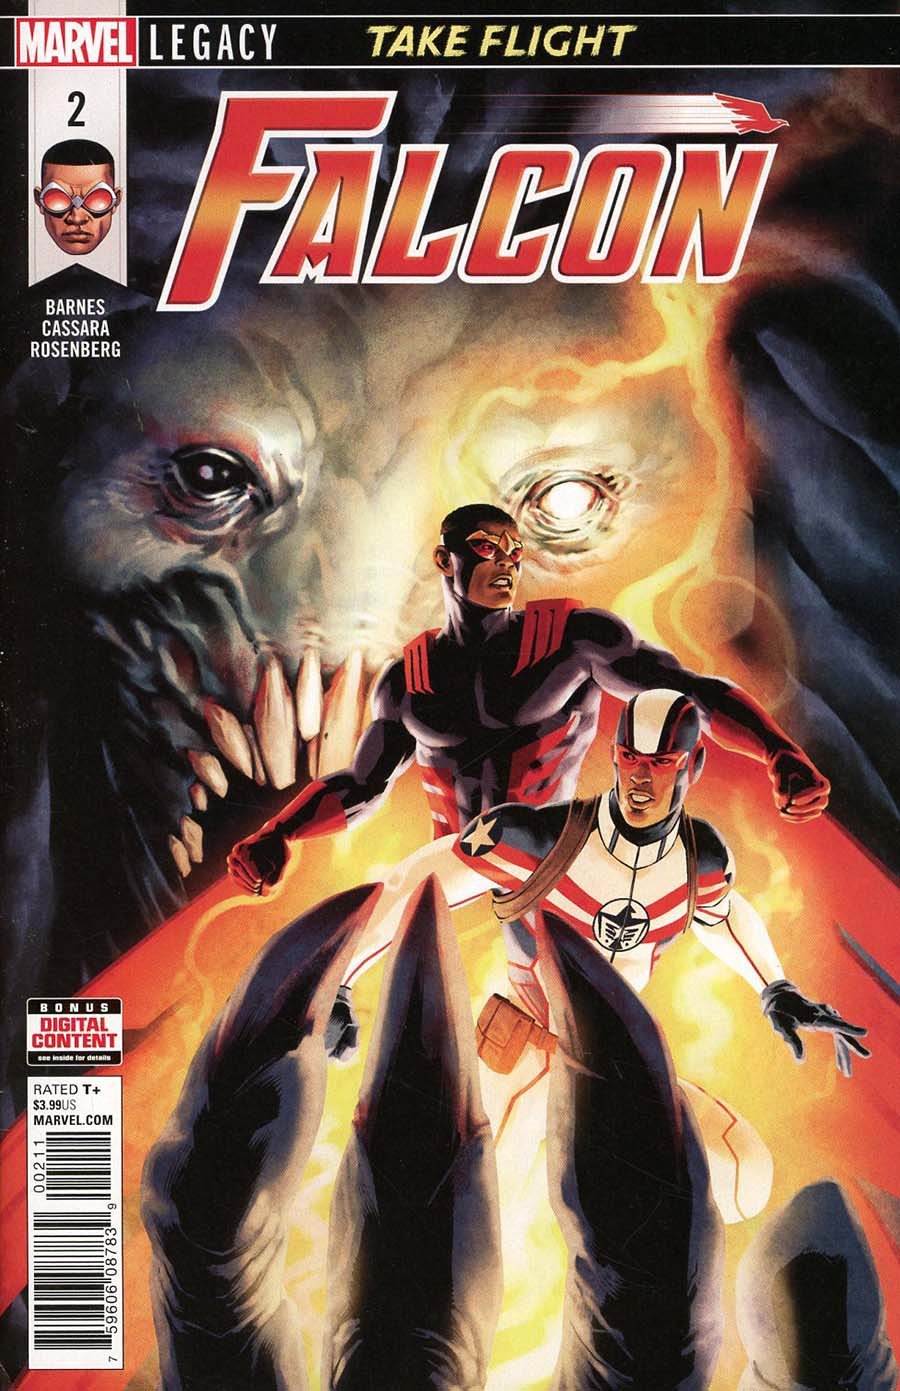 Falcon Vol 2 #2 (Marvel Legacy Tie-In)